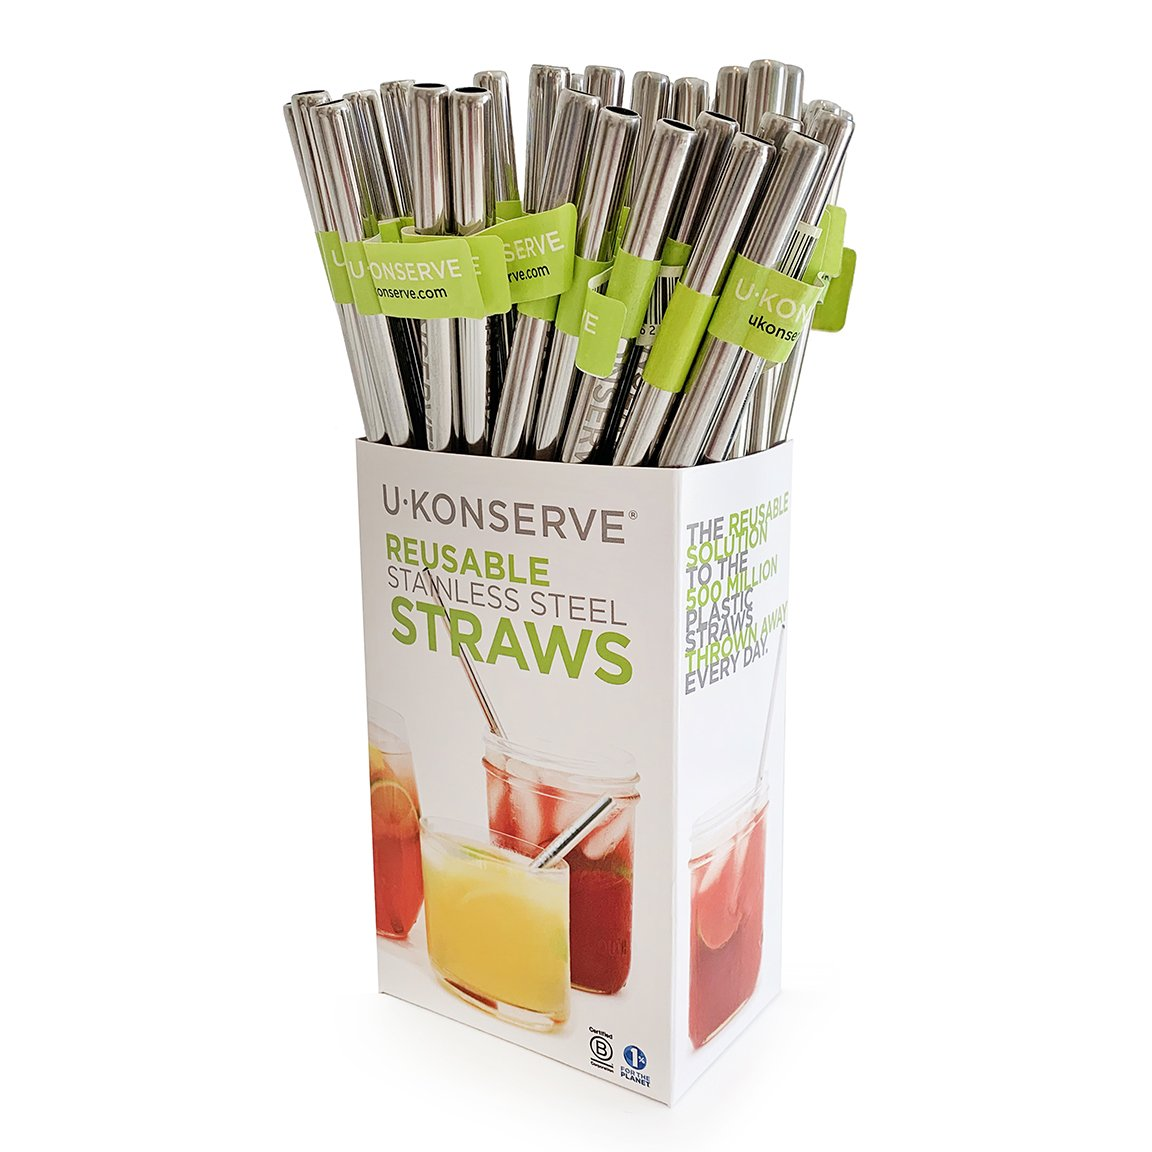 U Konserve Single Stainless Steel Straw